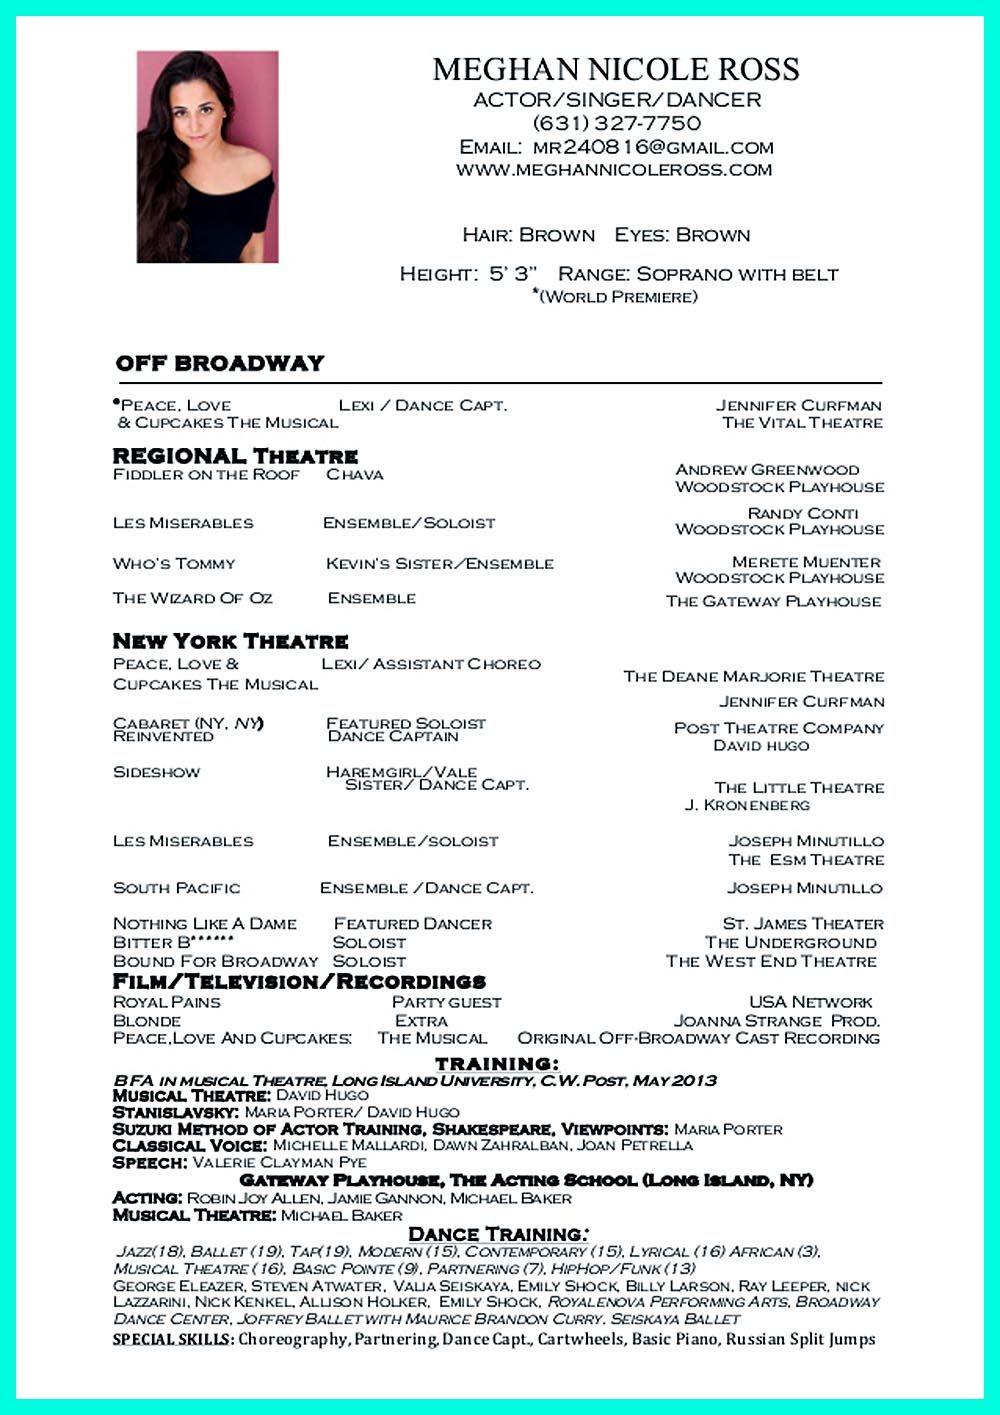 dance resume can be used for both novice and professional dancer  most job of dancer has minimum